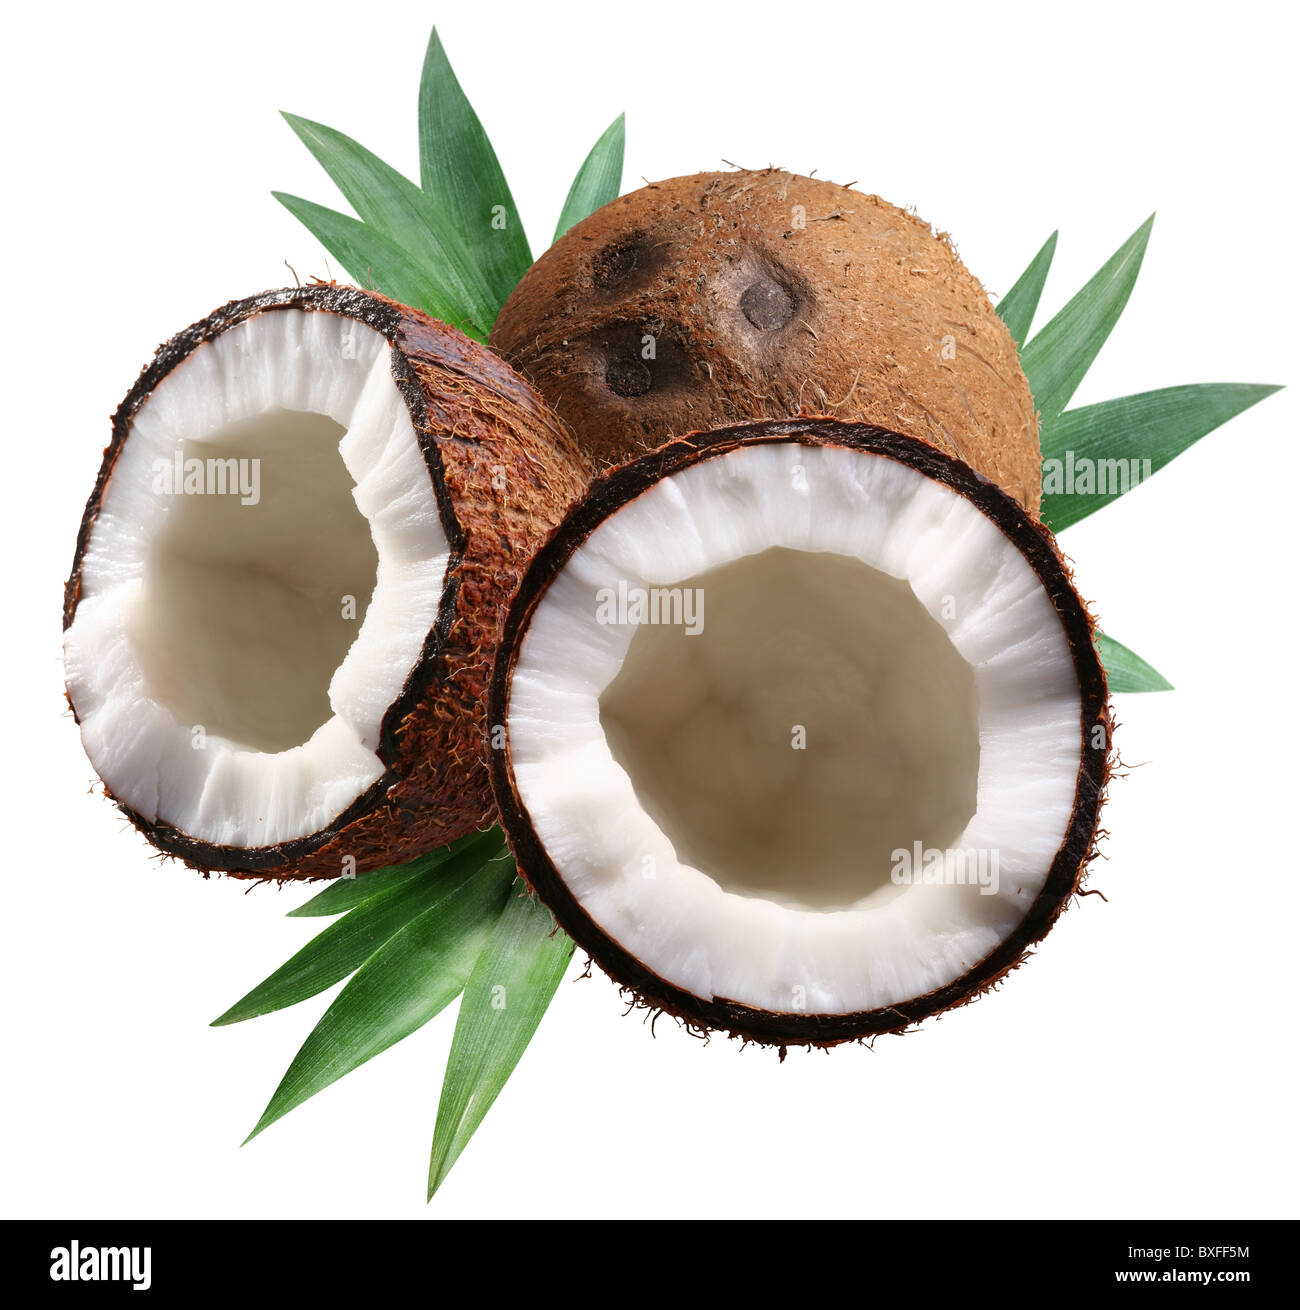 Chopped coconuts with leaves on white background. File contains a clipping paths. - Stock Image